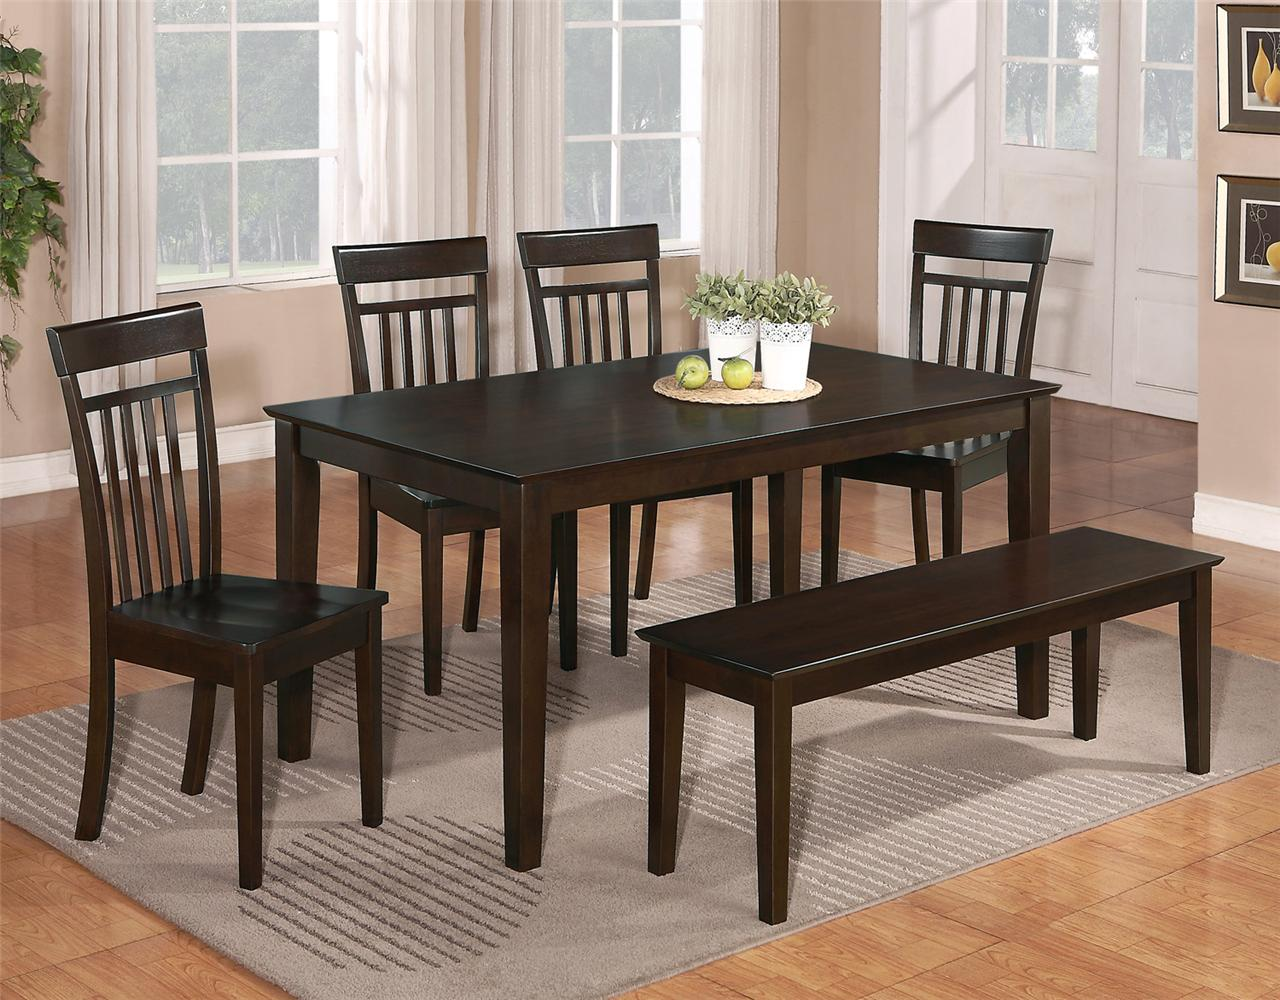 6 pc dinette kitchen dining room set table w 4 wood chair for Kitchen and dining room chairs